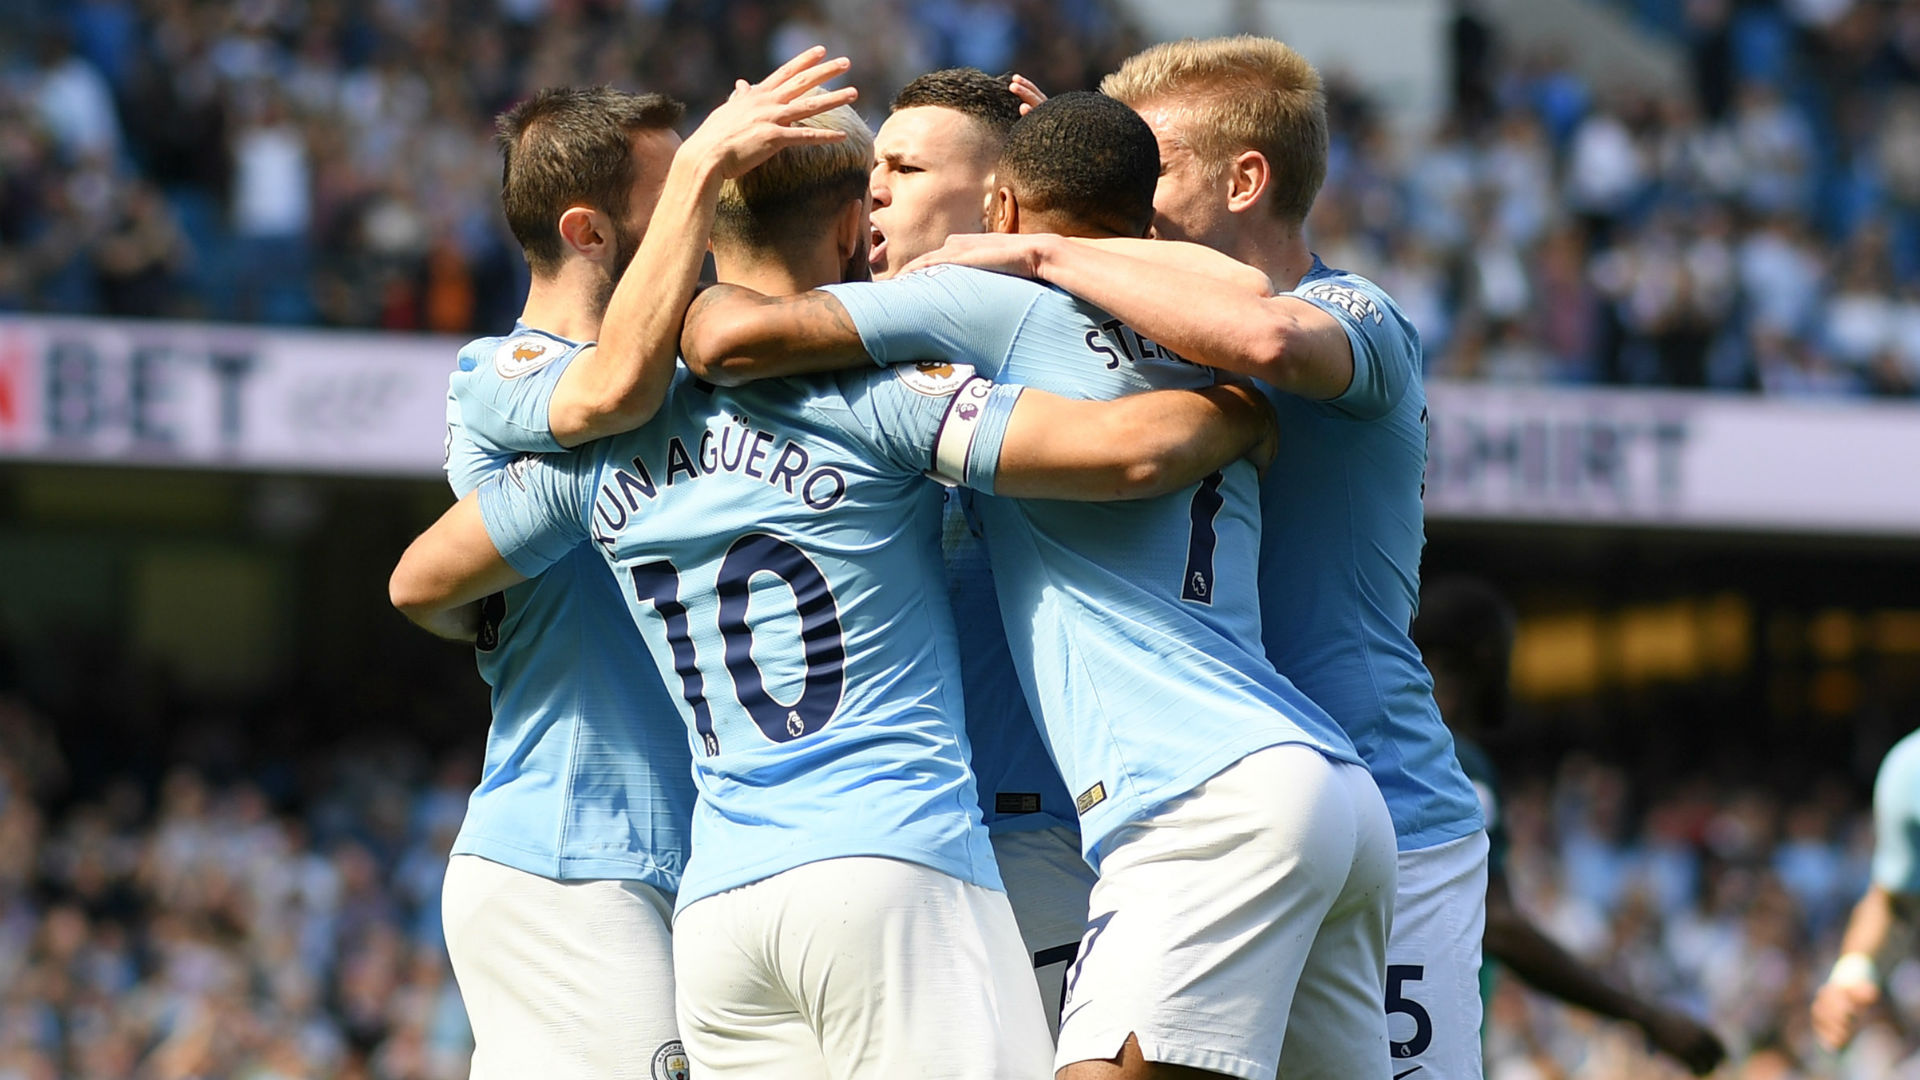 Report: Man City 1 Spurs 0